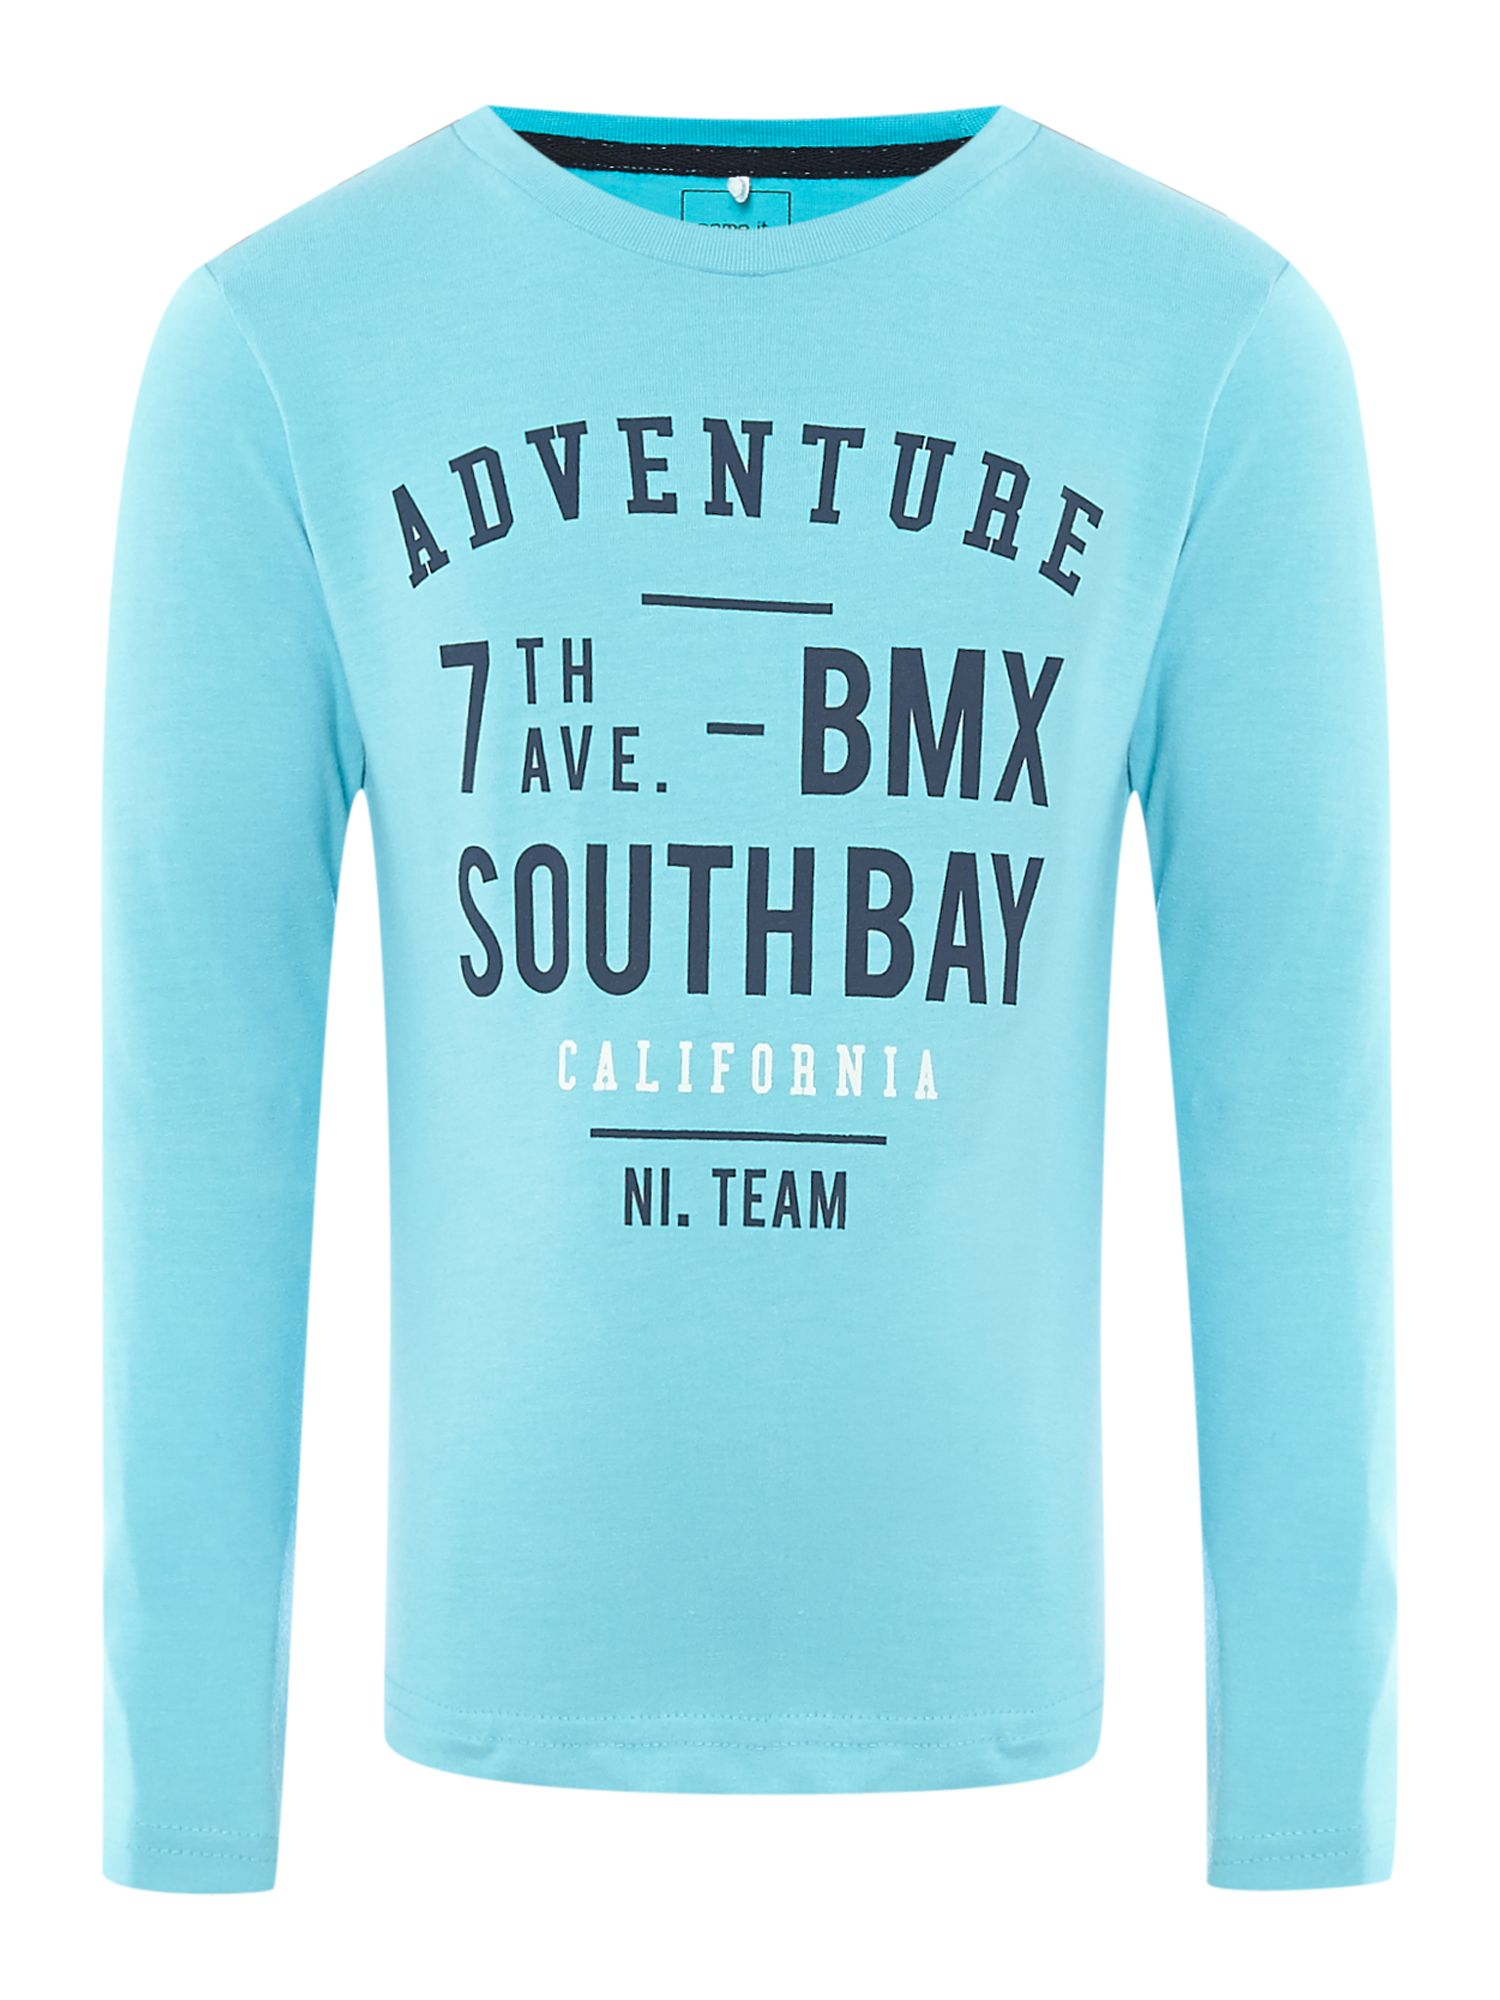 Boys South Bay t-shirt